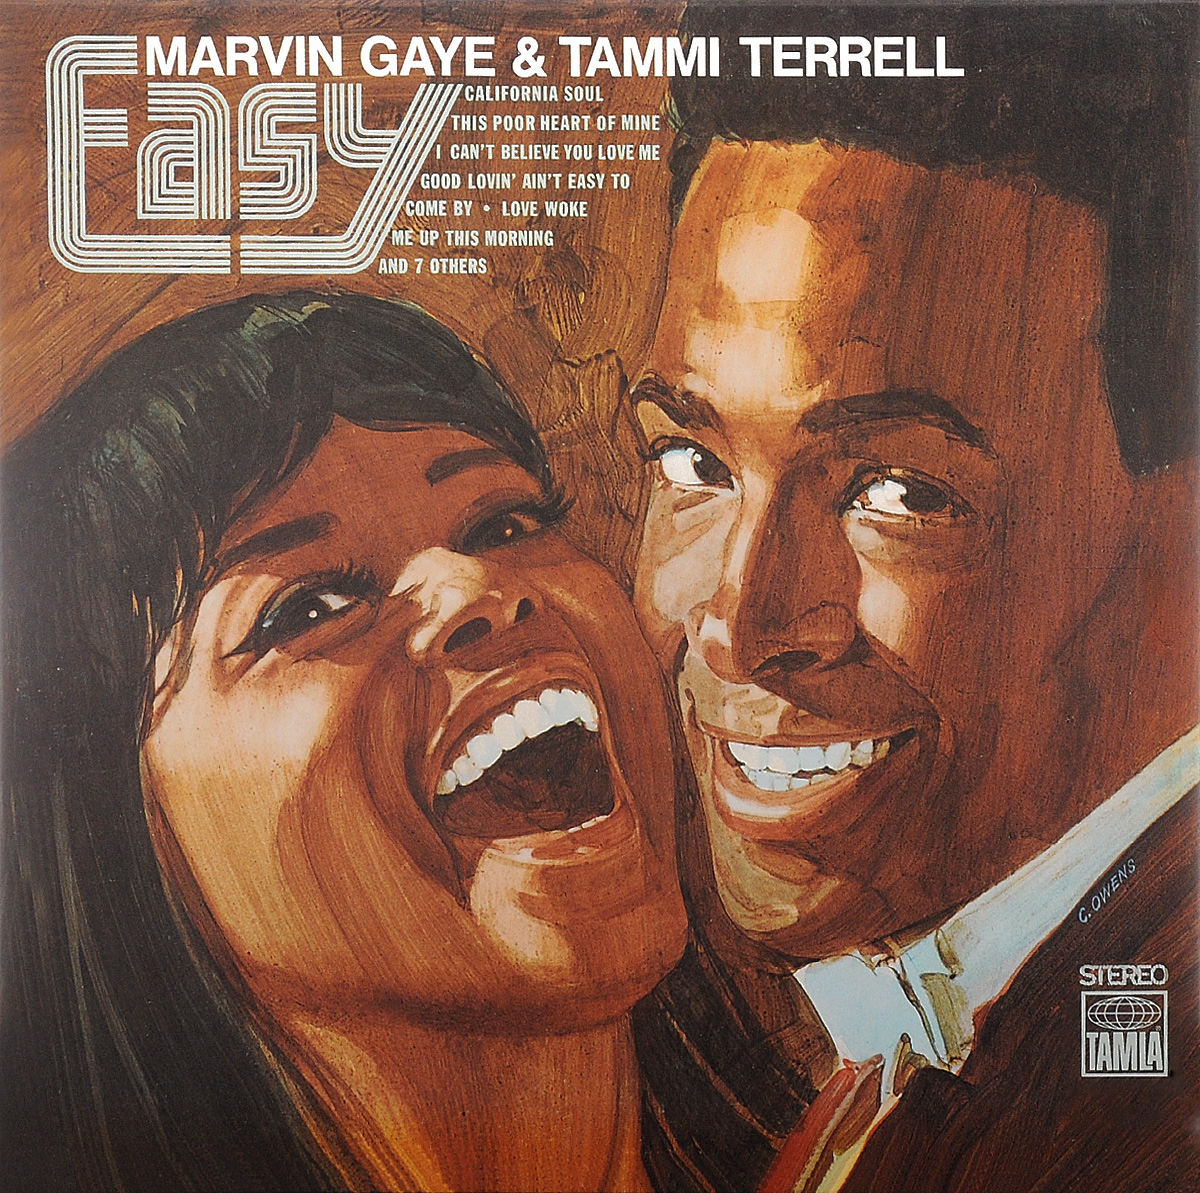 Marvin Gaye & Tammi Terrell. Easy (LP)